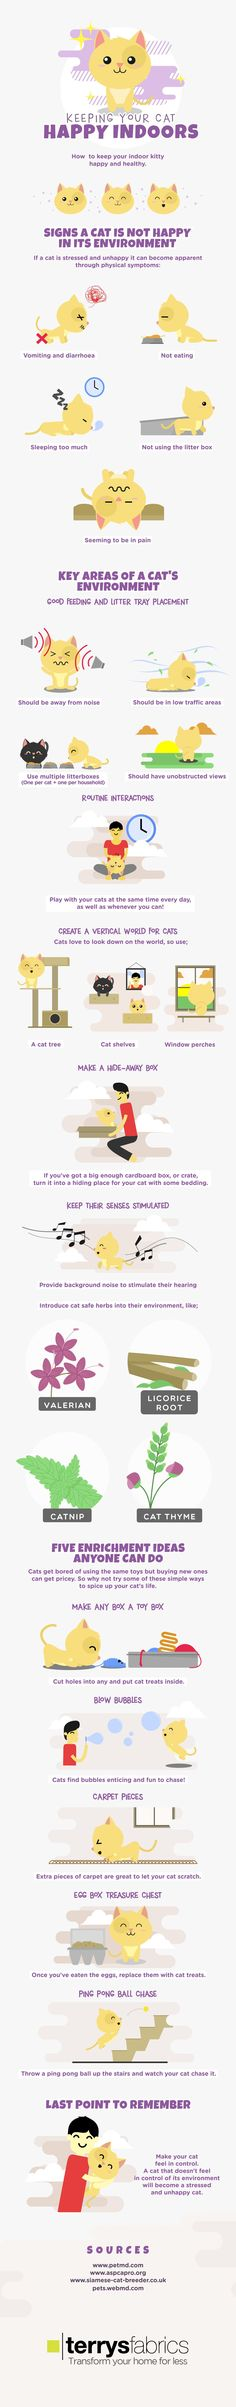 Cat Infographic: Keeping Your Inside Cat Happy! Diy Pour Chien, Catsu The Cat, Cat Hacks, Gatos Cats, Kitten Care, Cat Care Tips, Cat Behavior, All About Cats, Cat Health